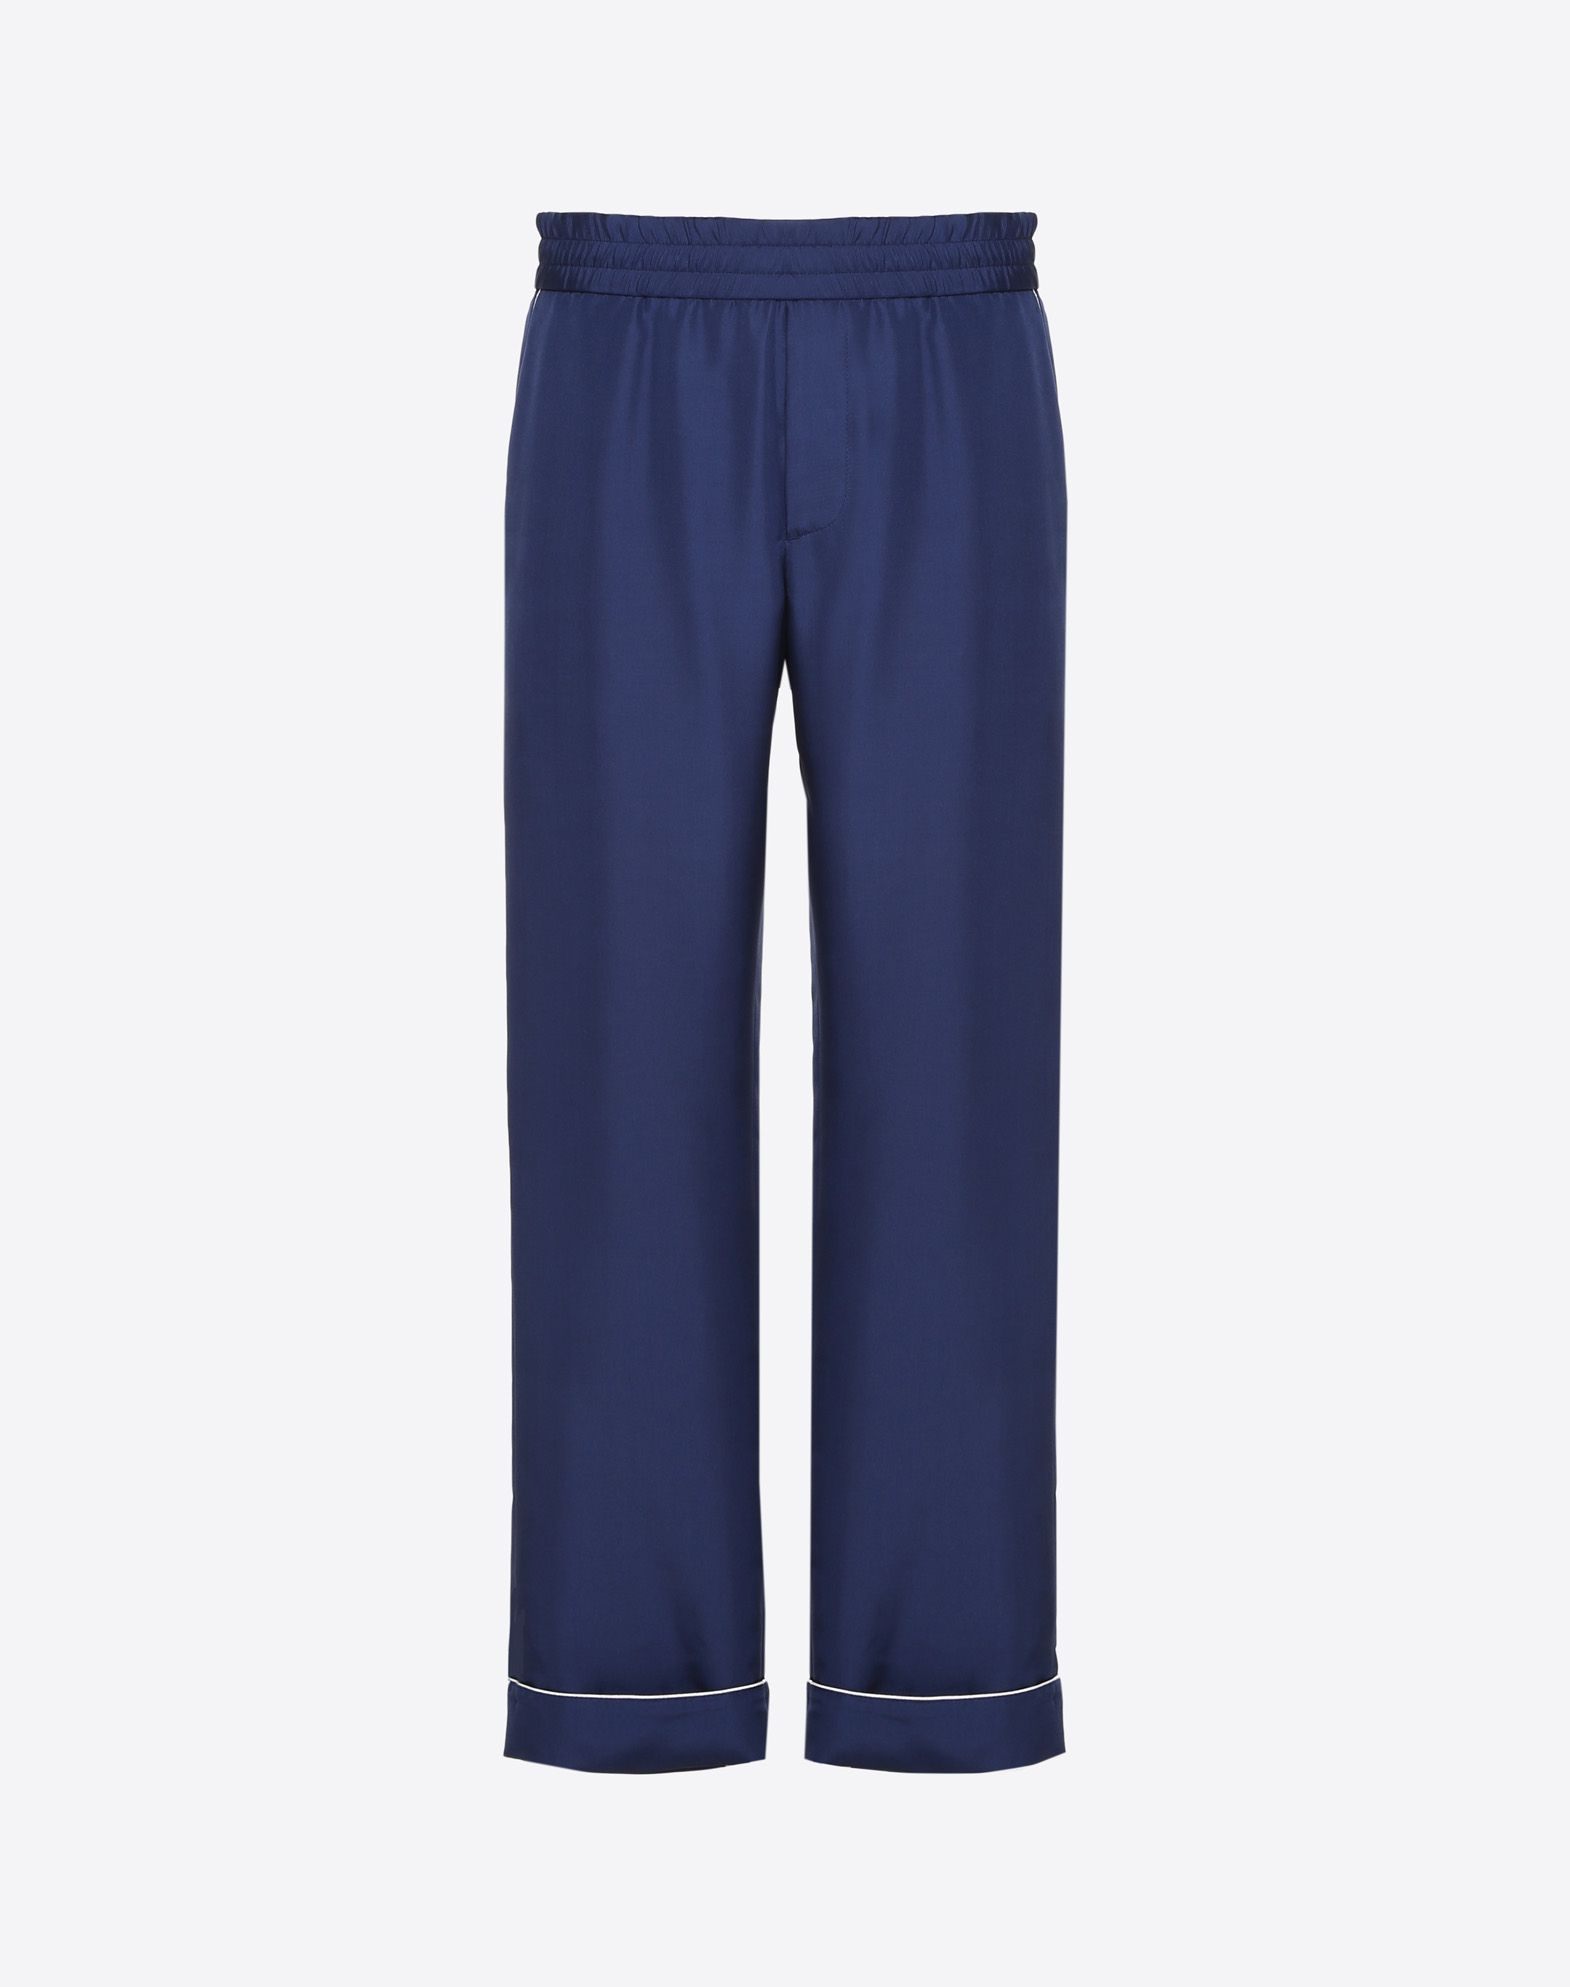 Silk pyjama trousers with piping detail